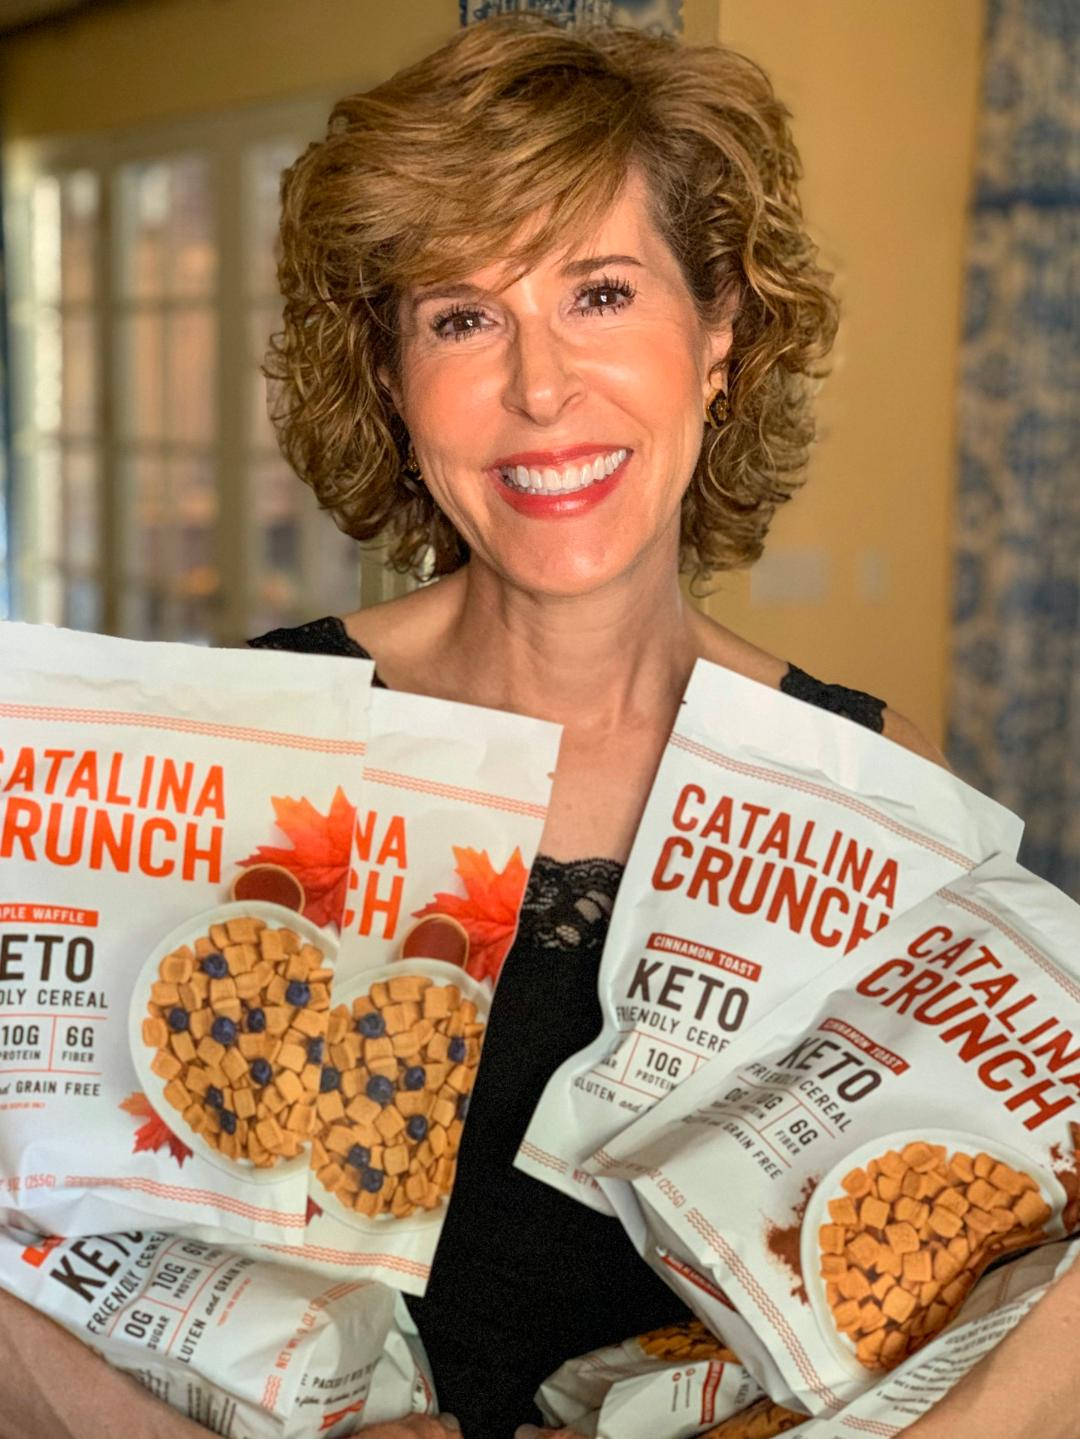 woman holding bags of catalina crunch cereal